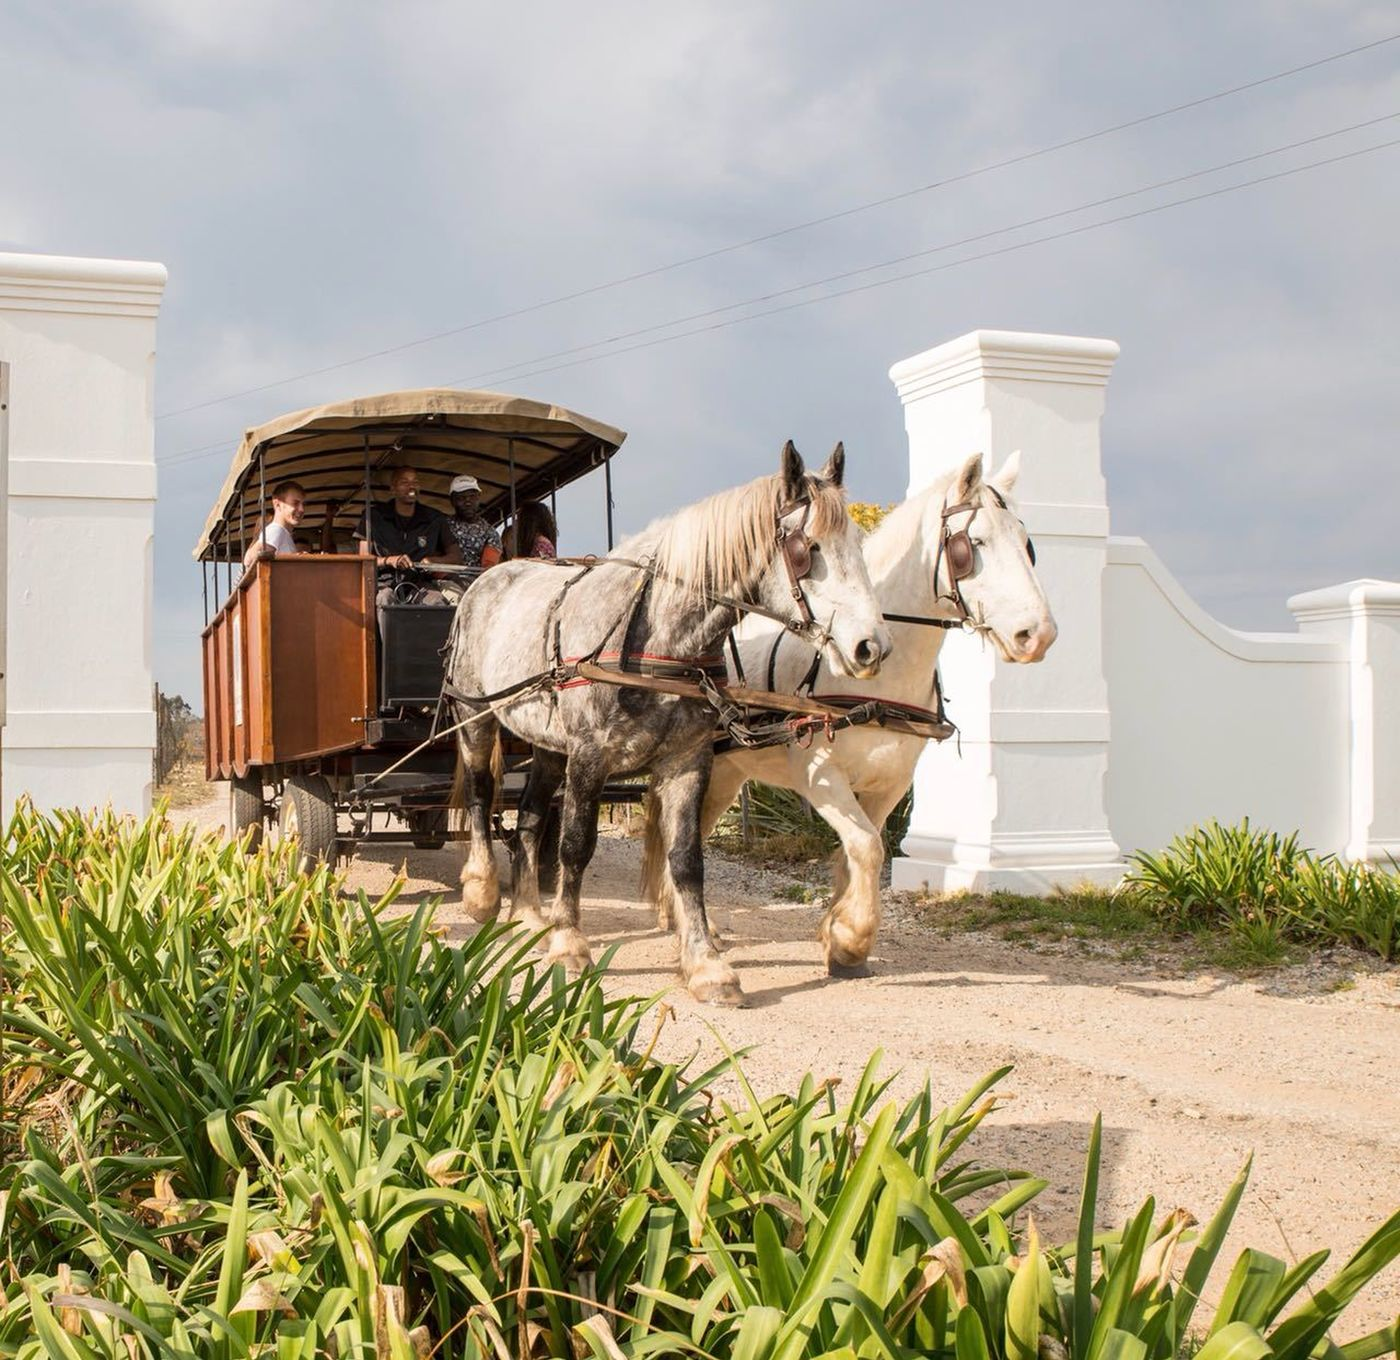 Plettenberg Bay Horse Drawn Carriage